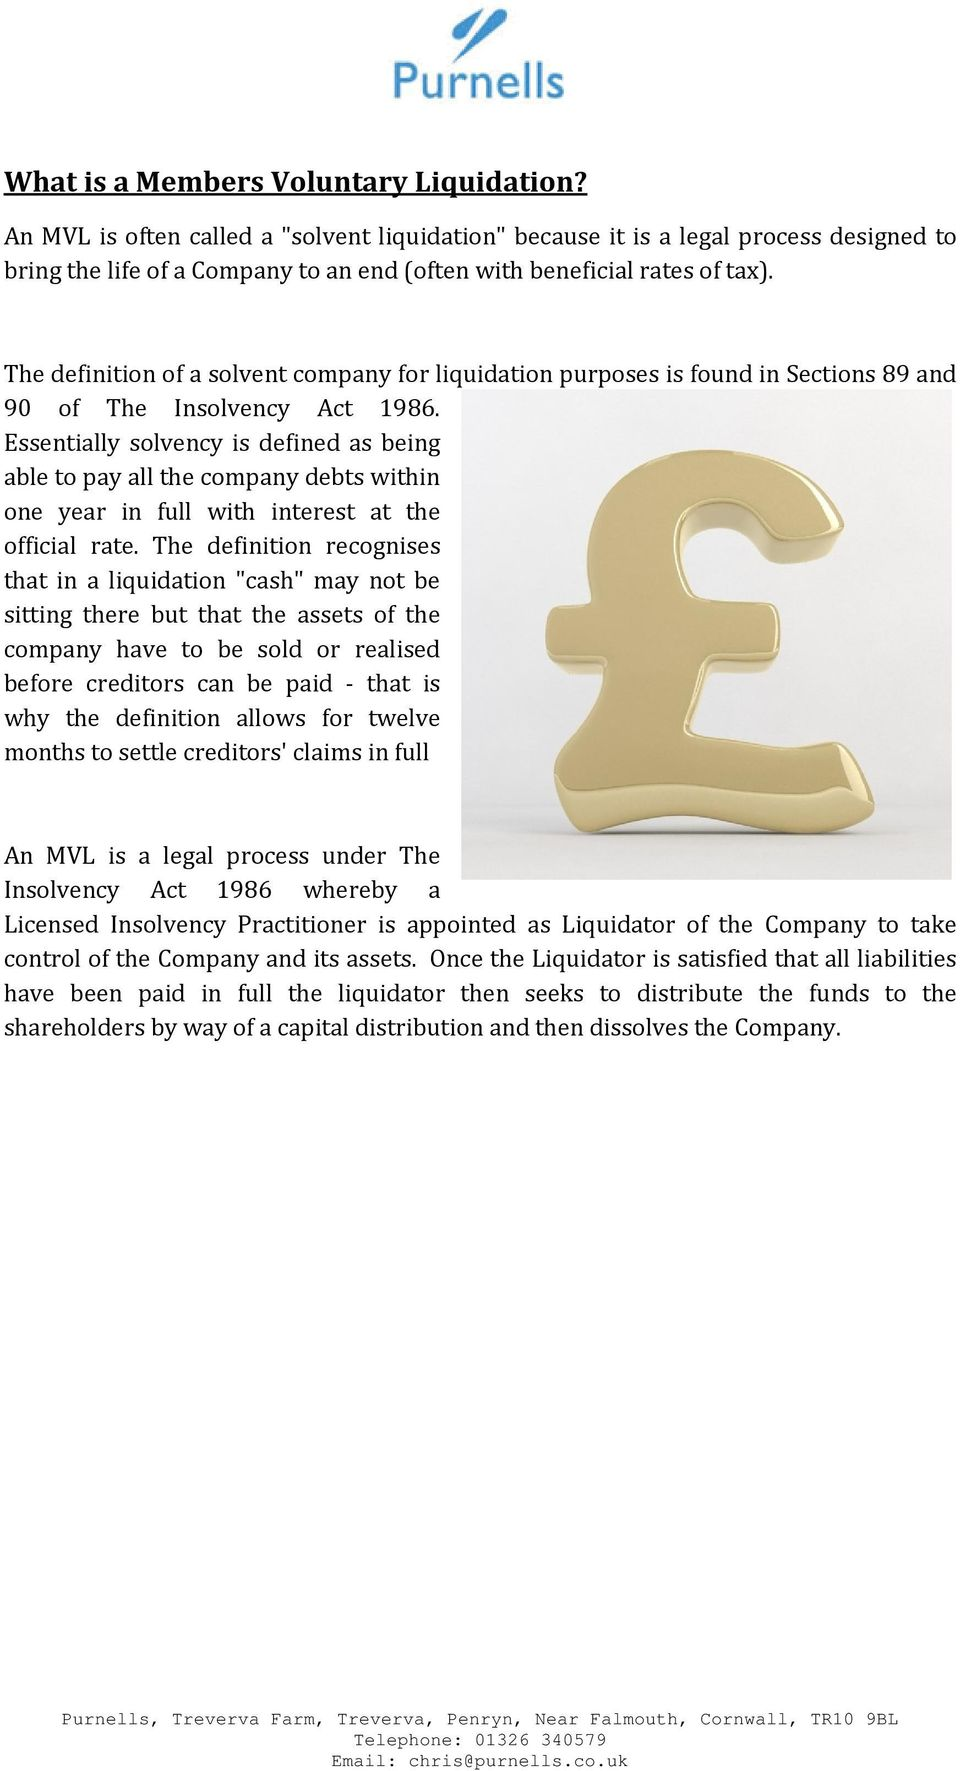 The definition of a solvent company for liquidation purposes is found in Sections 89 and 90 of The Insolvency Act 1986.